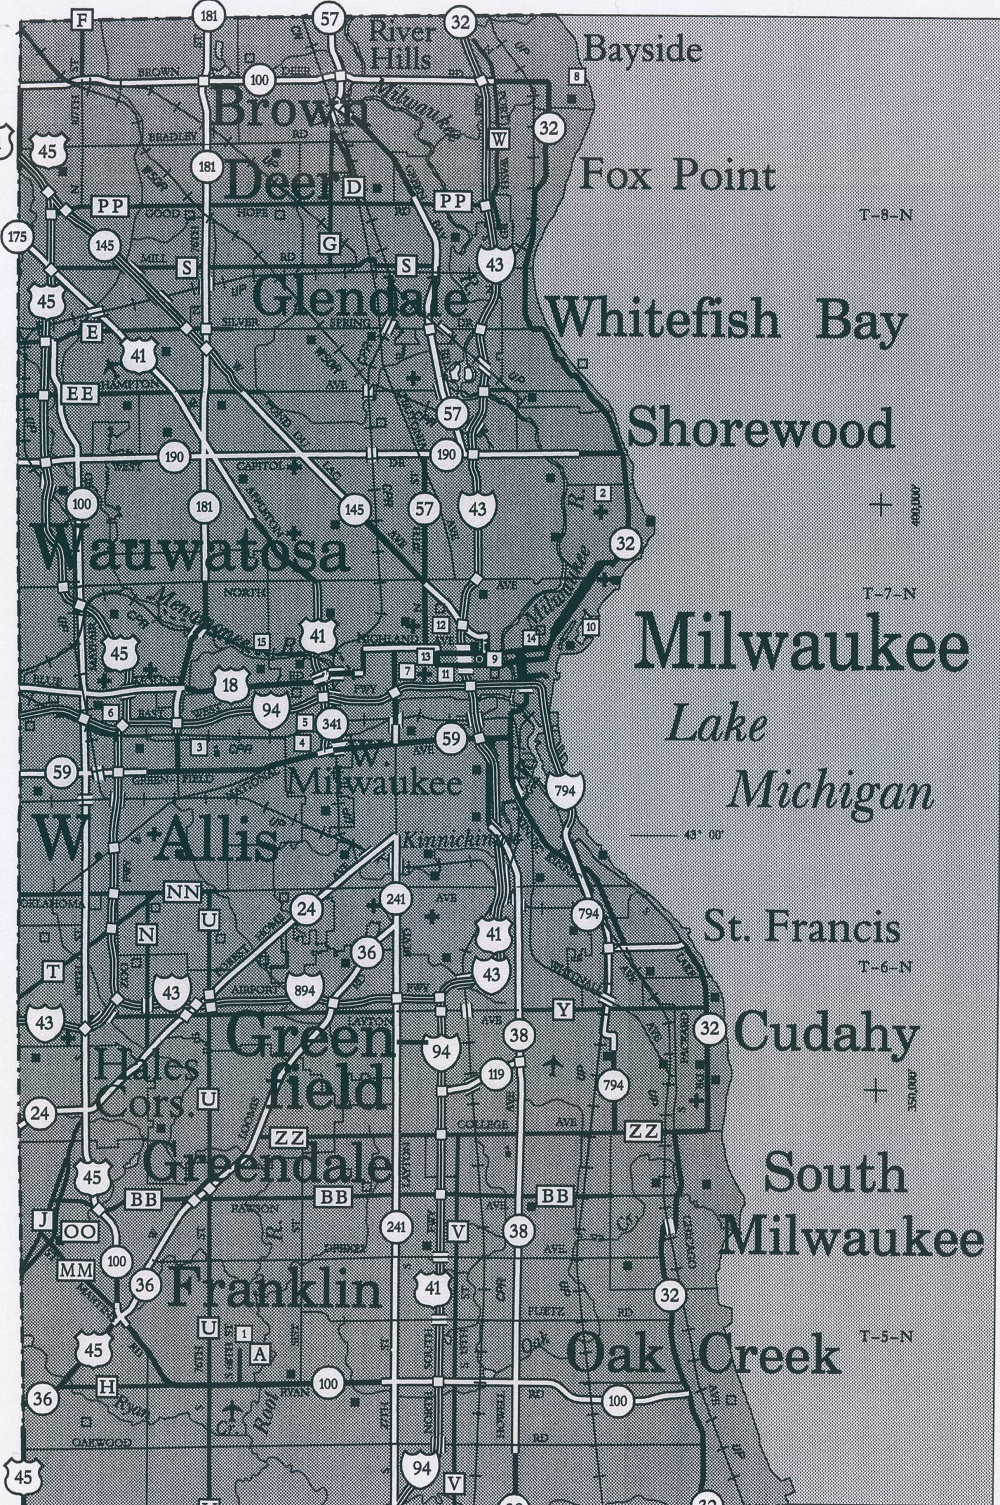 <table class=&quot;lightbox&quot;><tr><td colspan=2 class=&quot;lightbox-title&quot;>Milwaukee's Iron Ring</td></tr><tr><td colspan=2 class=&quot;lightbox-caption&quot;>This map of Milwaukee County from 2006 illustrates the many towns and villages that compose the Iron Ring around the city of Milwaukee that developed as a result of the Oak Creek Law. </td></tr><tr><td colspan=2 class=&quot;lightbox-spacer&quot;></td></tr><tr class=&quot;lightbox-detail&quot;><td class=&quot;cell-title&quot;>Source: </td><td class=&quot;cell-value&quot;>From the American Geographical Society Library Digital Map Collection. University of Wisconsin-Milwaukee Libraries.<br /><a href=&quot;https://collections.lib.uwm.edu/digital/collection/agdm/id/13035/rec/280&quot; target=&quot;_blank&quot;>University of Wisconsin-Milwaukee Libraries</a></td></tr><tr class=&quot;filler-row&quot;><td colspan=2>&nbsp;</td></tr></table>